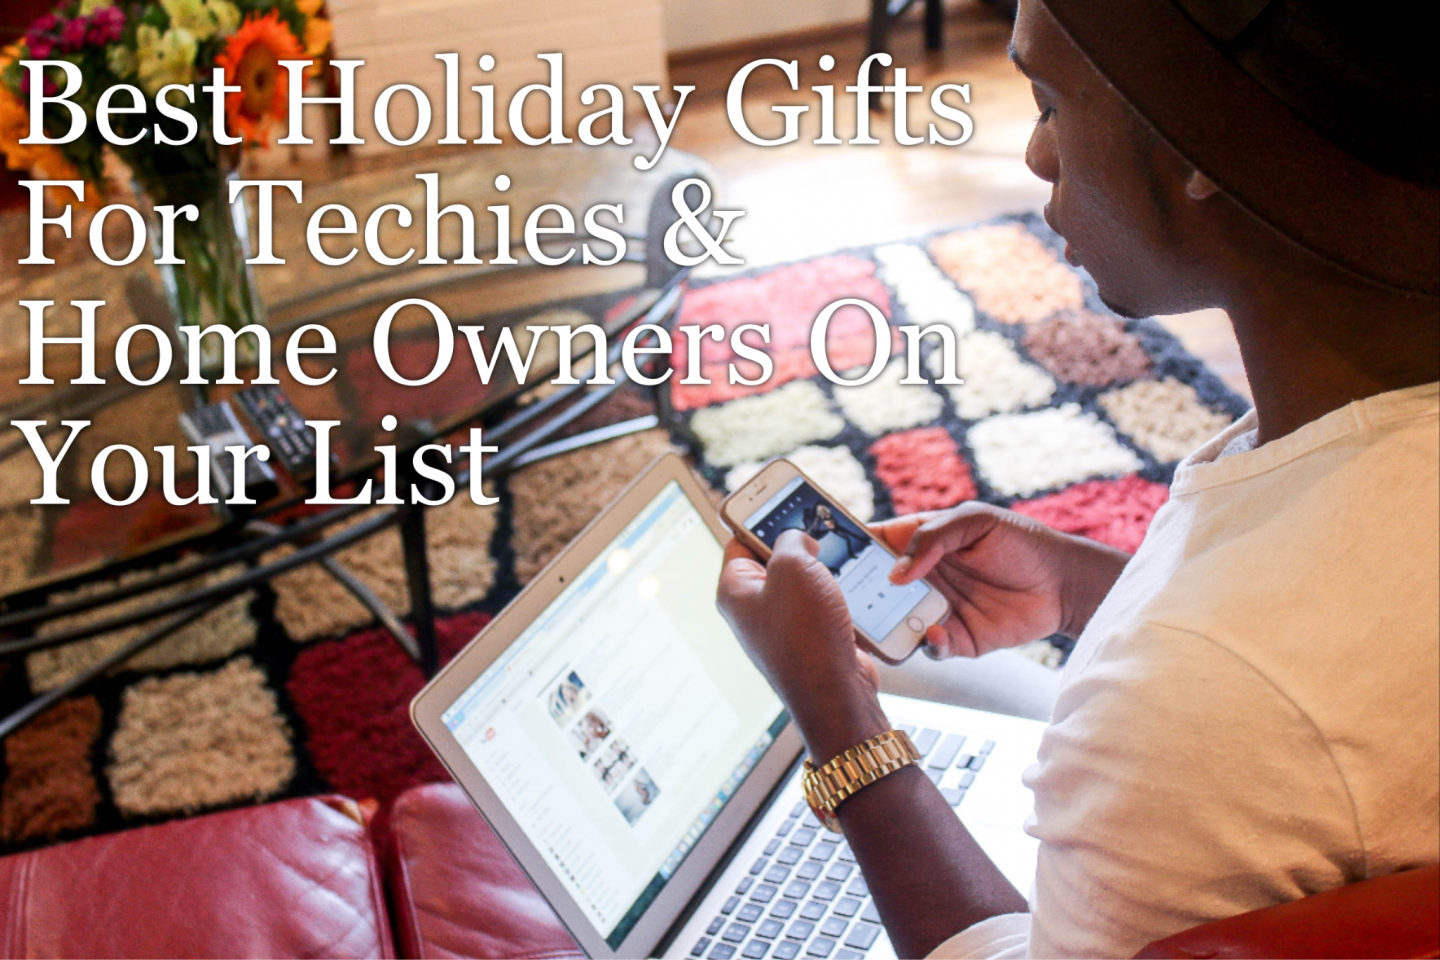 Best Holiday Gifts For Techies & Home Owners On Your List. From the garden lovers to the must buy every new gadget on the market, we've a stellar list.